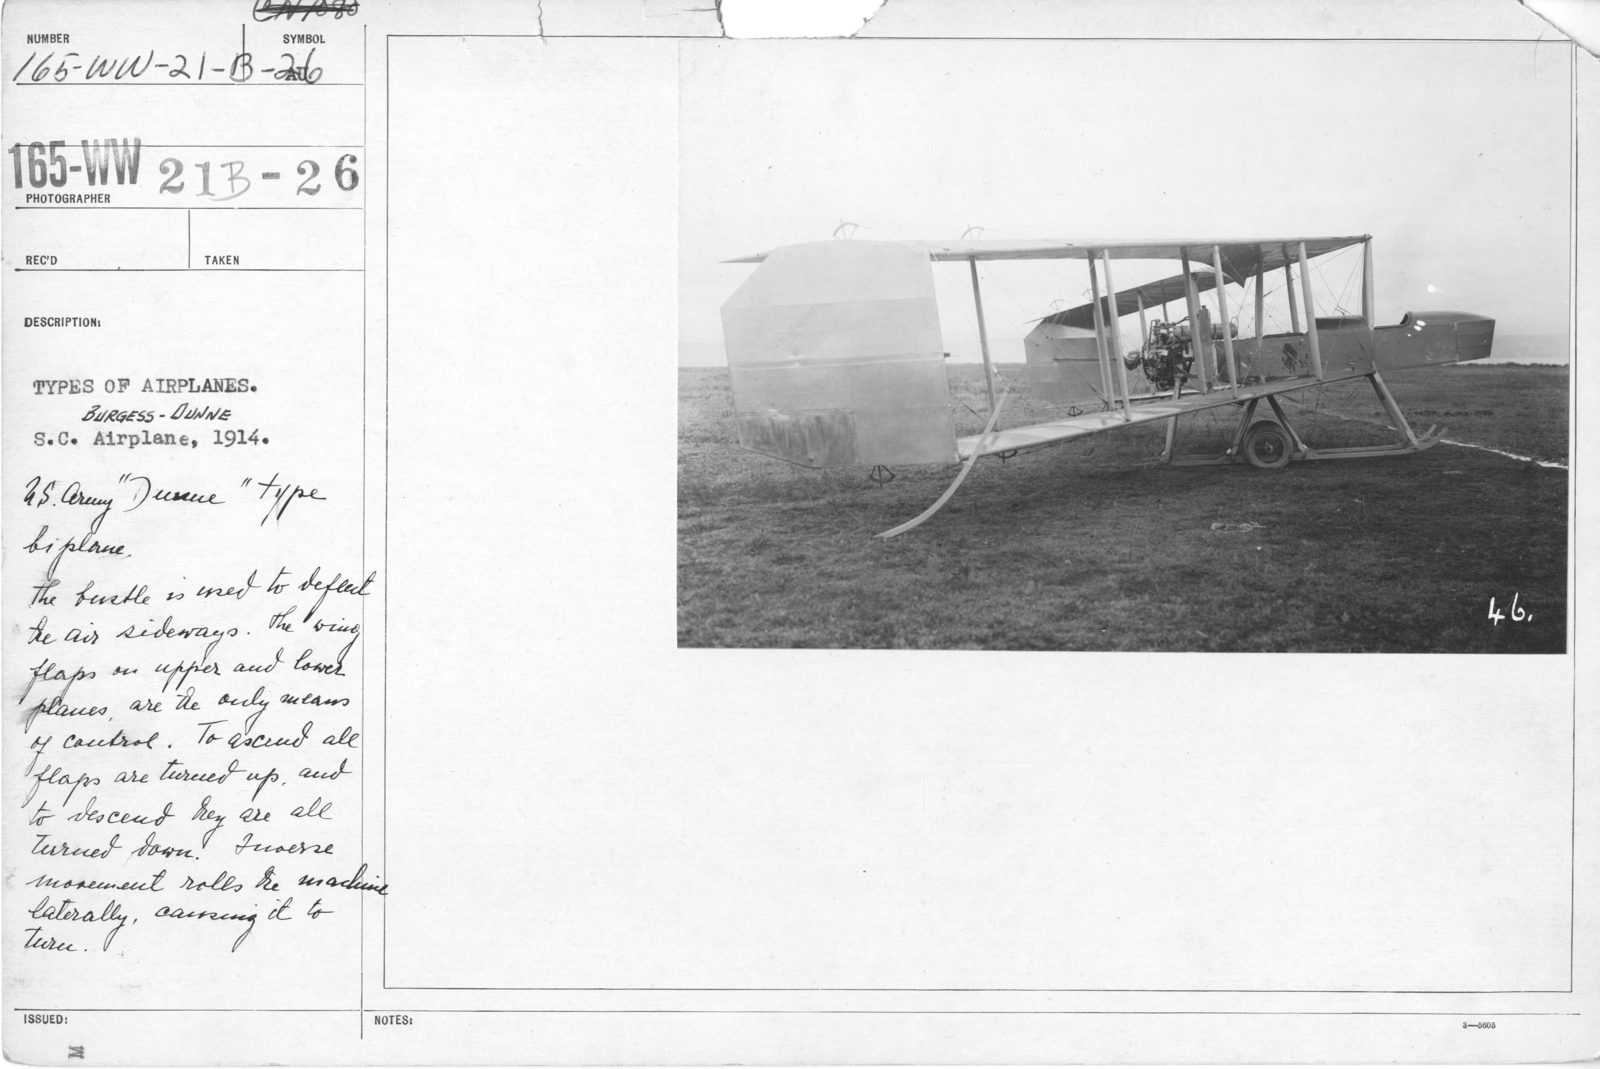 """Airplanes - Types - Types of airplanes. S.C. Airplane, 1914. U.S. Army """"Dunne"""" type biplane. The bustle is used to deflect the air sideways. The wing flaps on upper and lower planes are the only … of control. To ascend all flaps are turned up, and to descend they are all turned down. ... movement rolls the machine laterally, carrying it to .."""